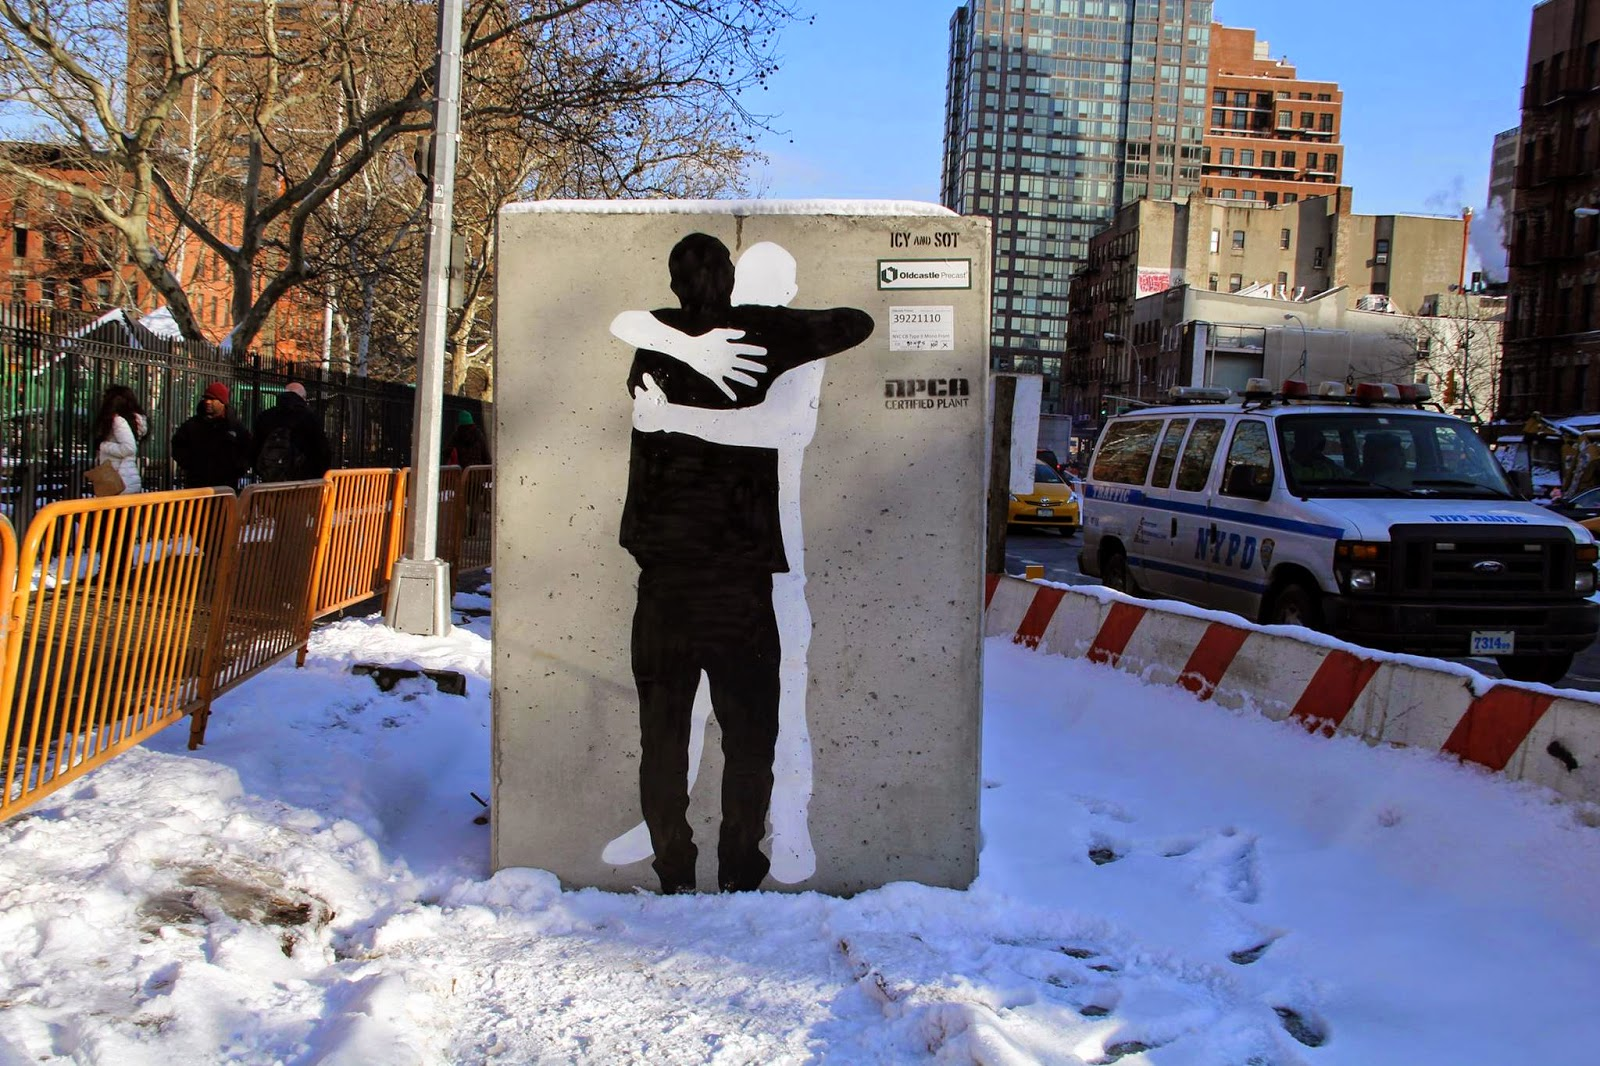 Icy & Sot unveil a brilliant street piece in New York City, USA